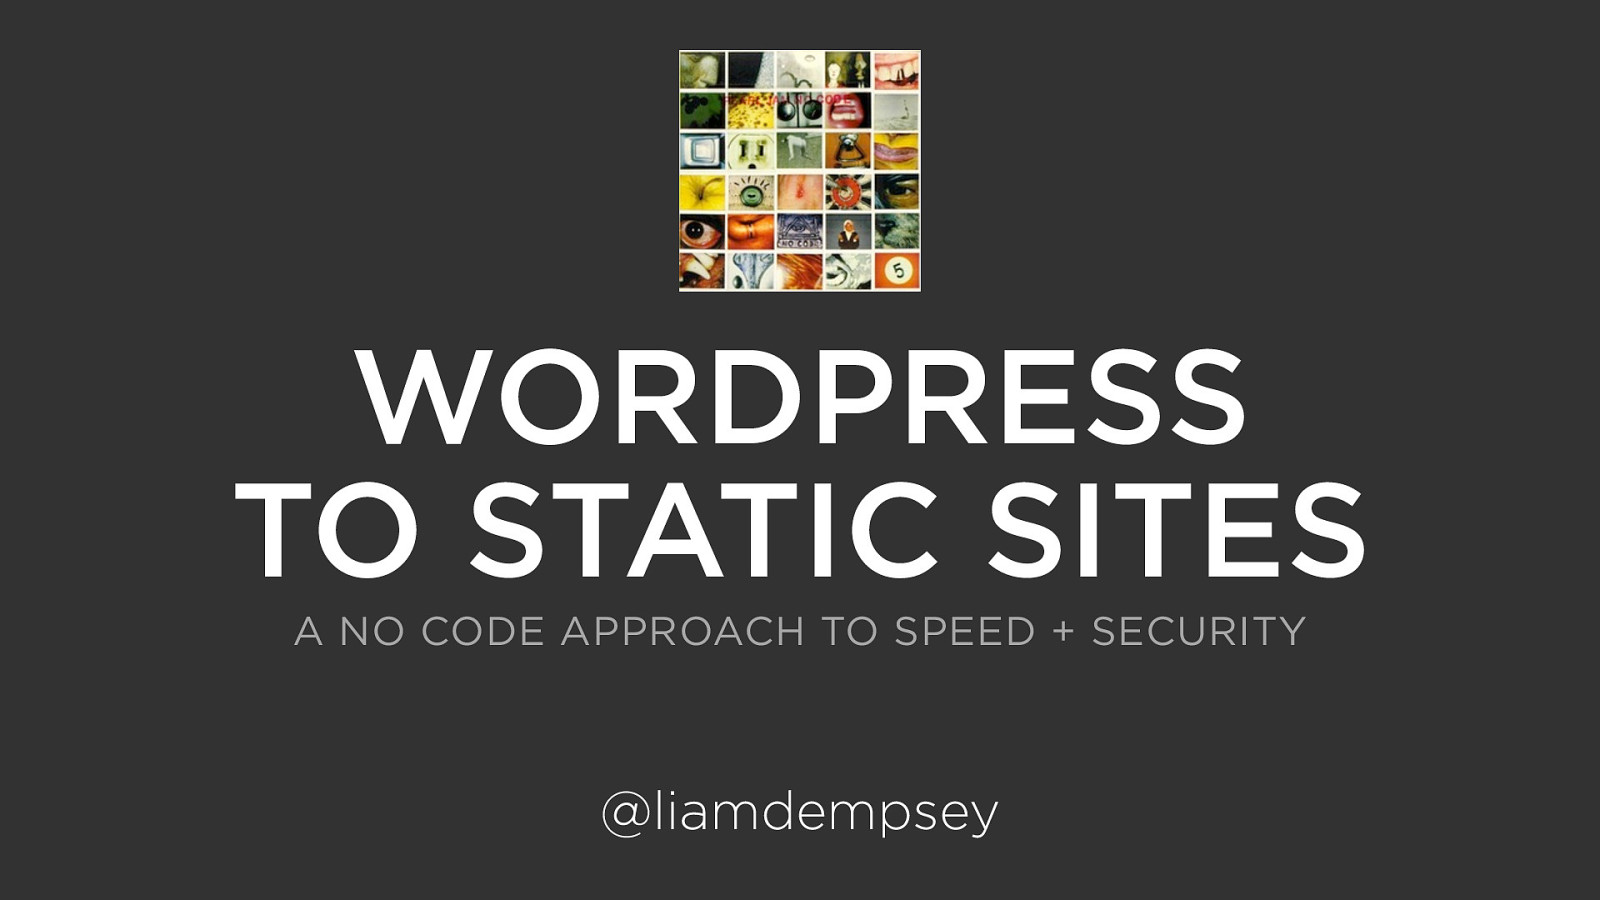 WordPress to Static Sites: A No Code Approach to Speed + Security